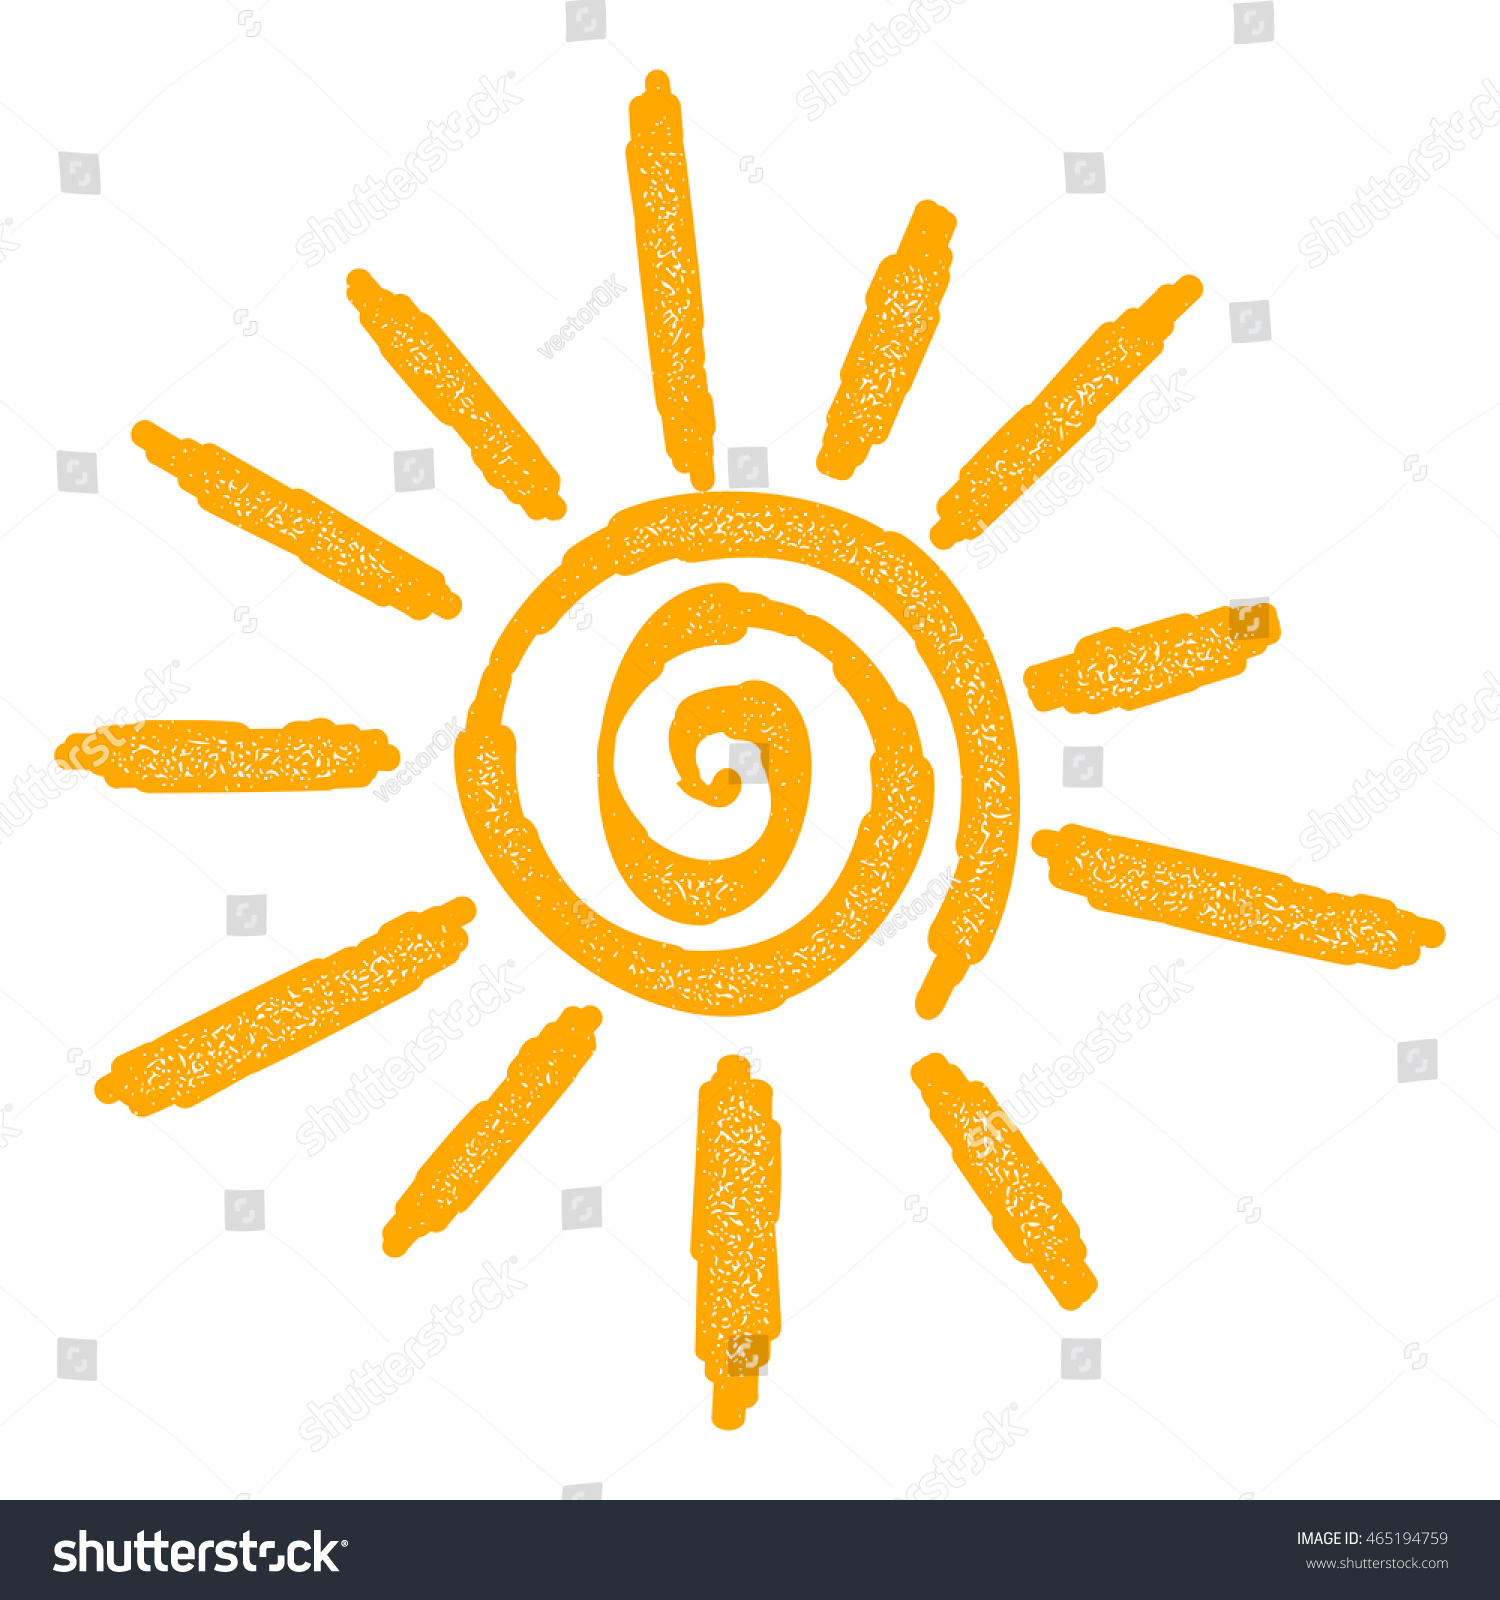 Abstract Yellow Sun Sign On White Stock Vector 465194759 - Shutterstock